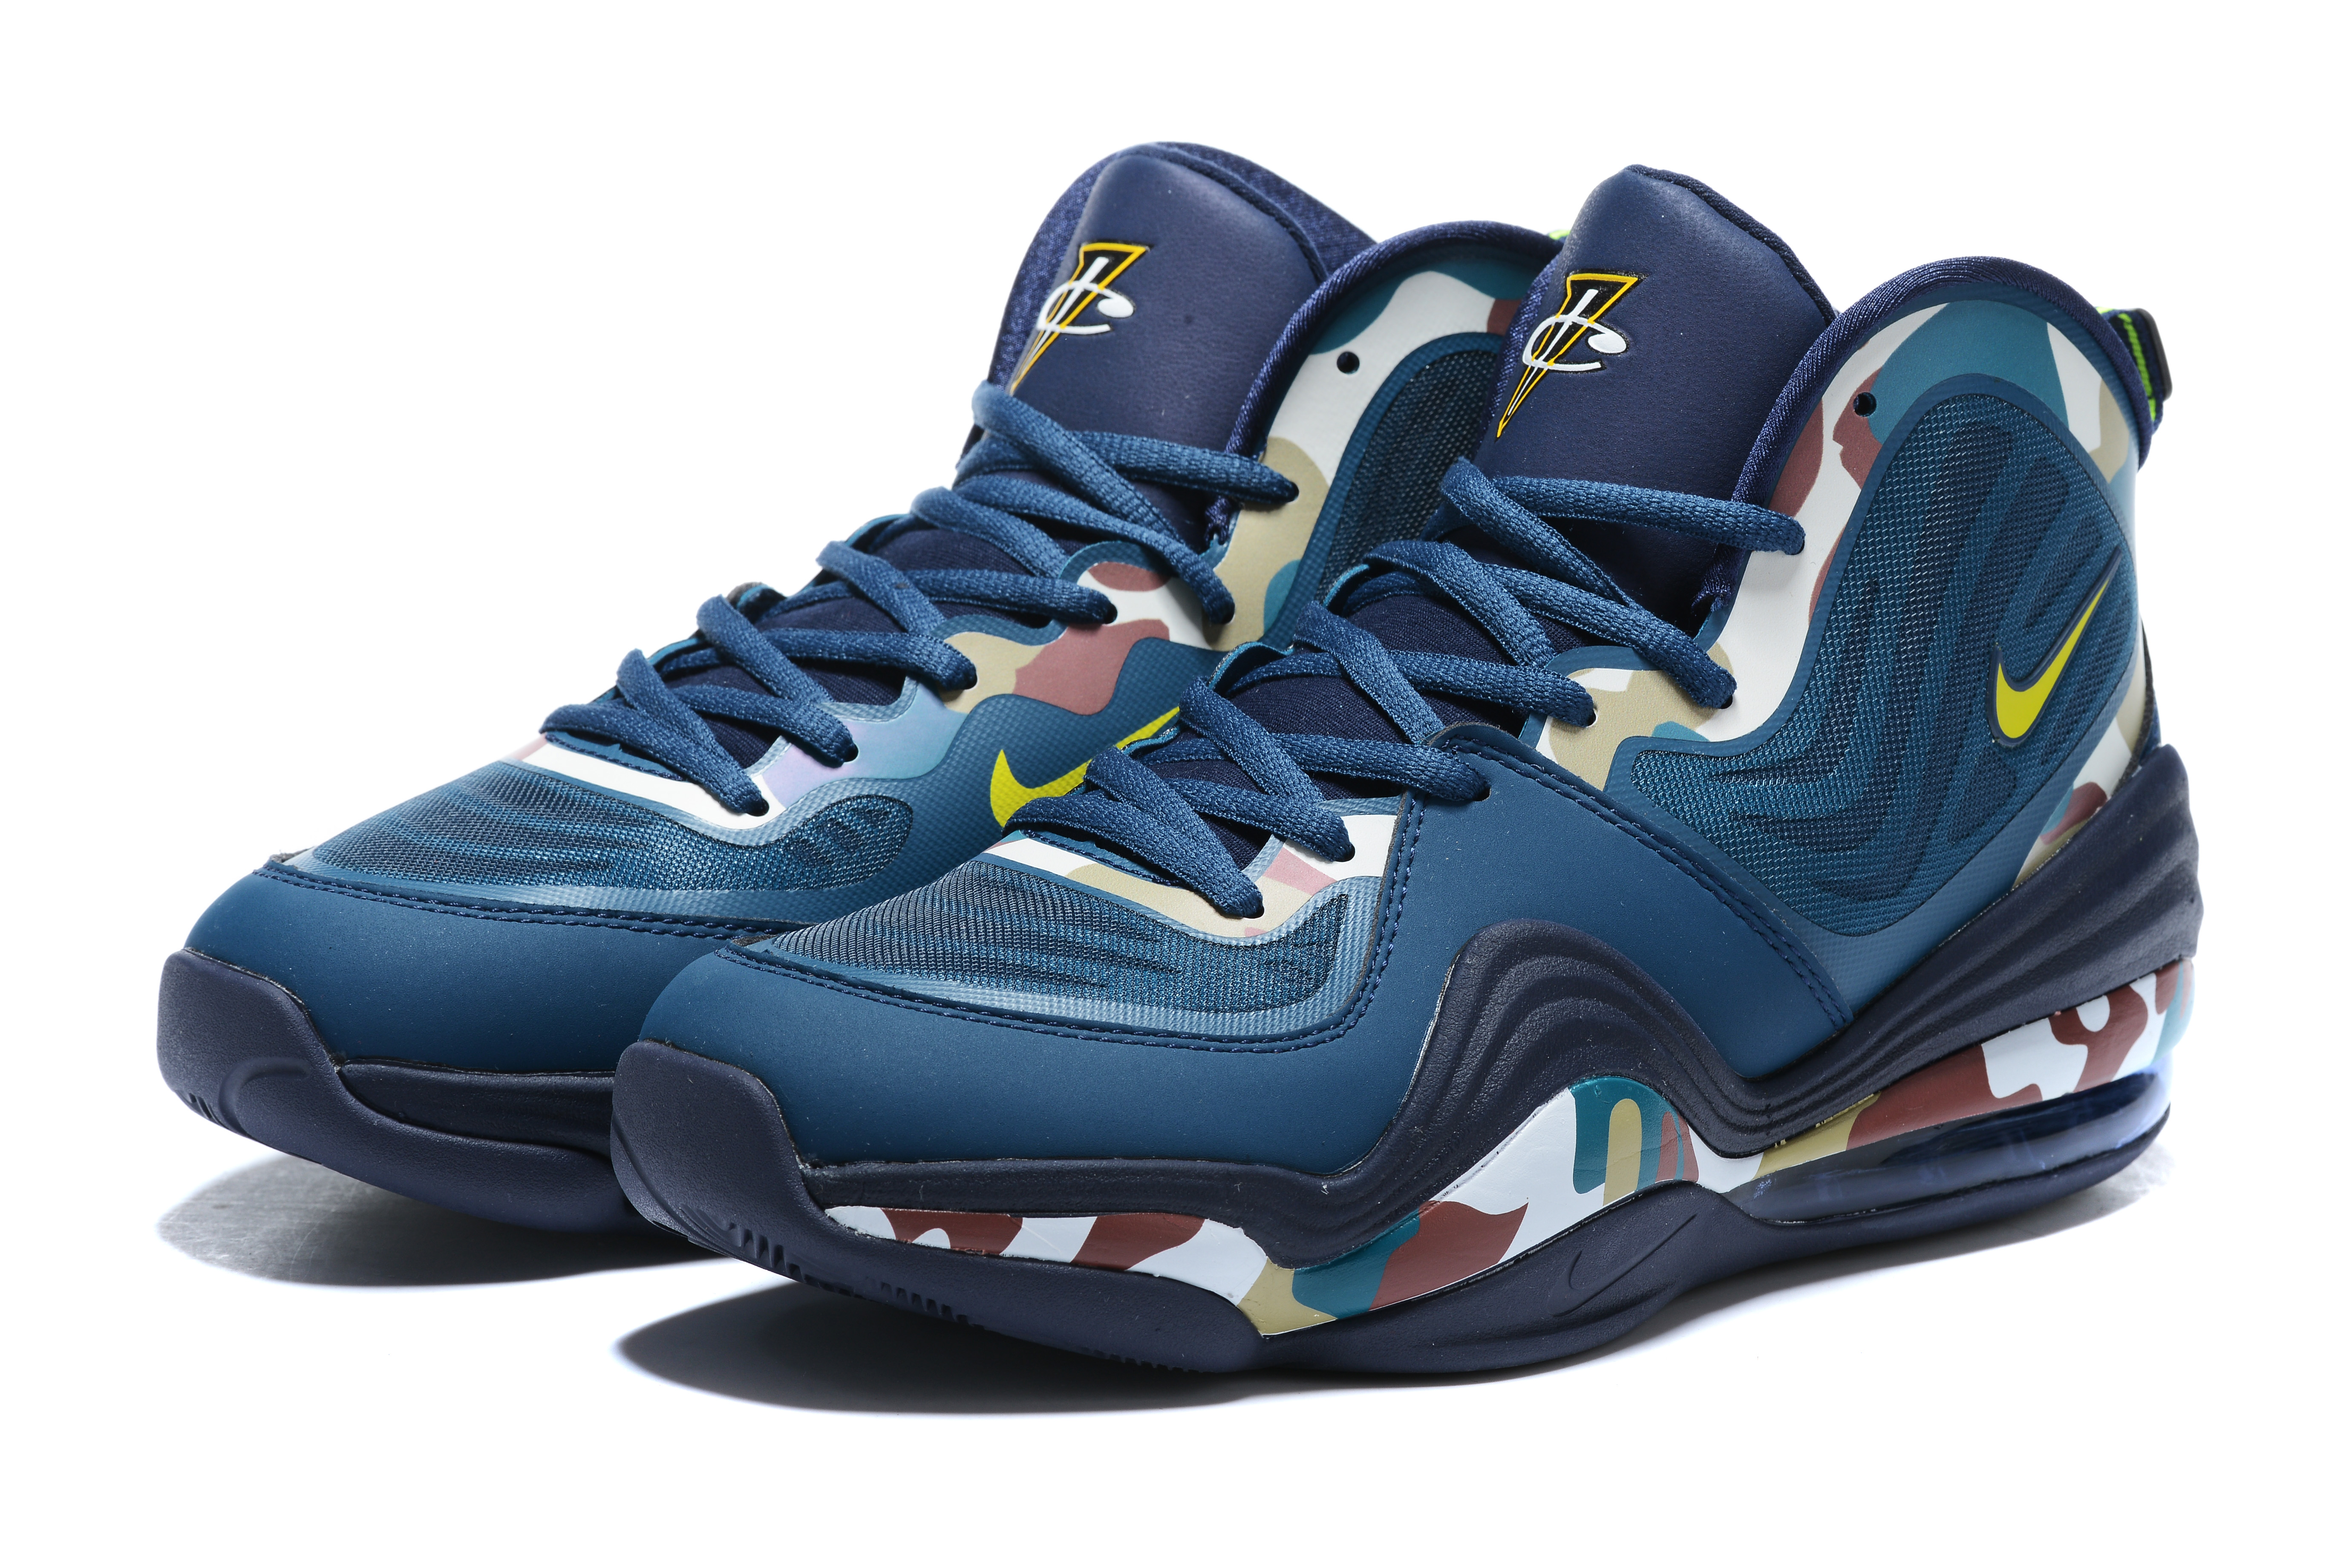 2020 Nike Penny Hardaway V Navy Blue Colorful Basketball Shoes